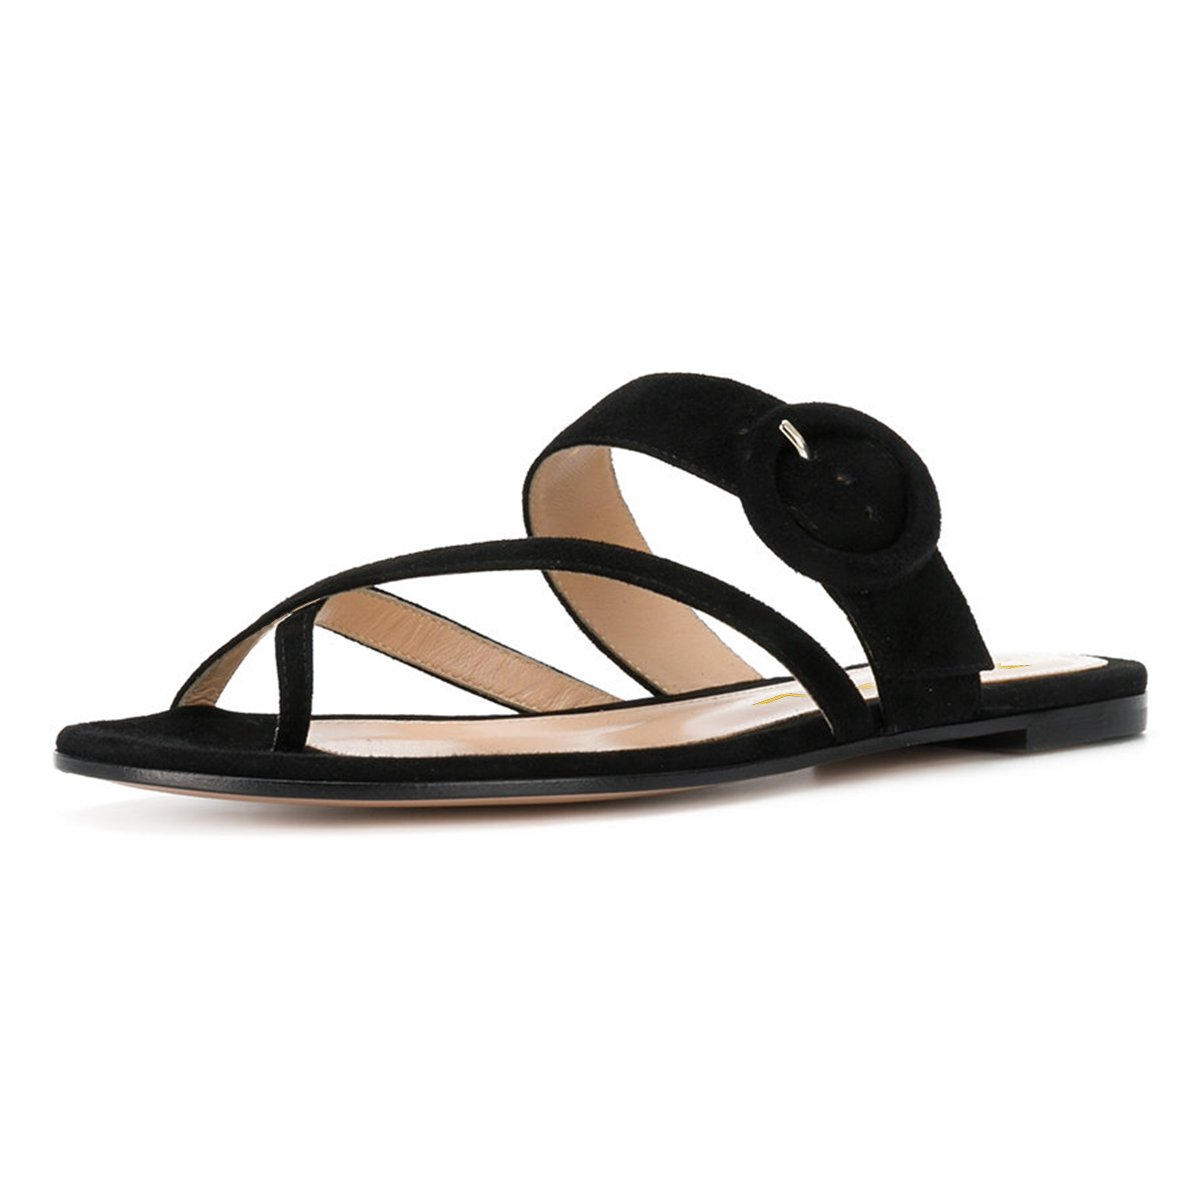 YDN Women Casual Flip Flops Sandals Slip on Sandals Low Heels Thong Shoes with Buckle Black 15